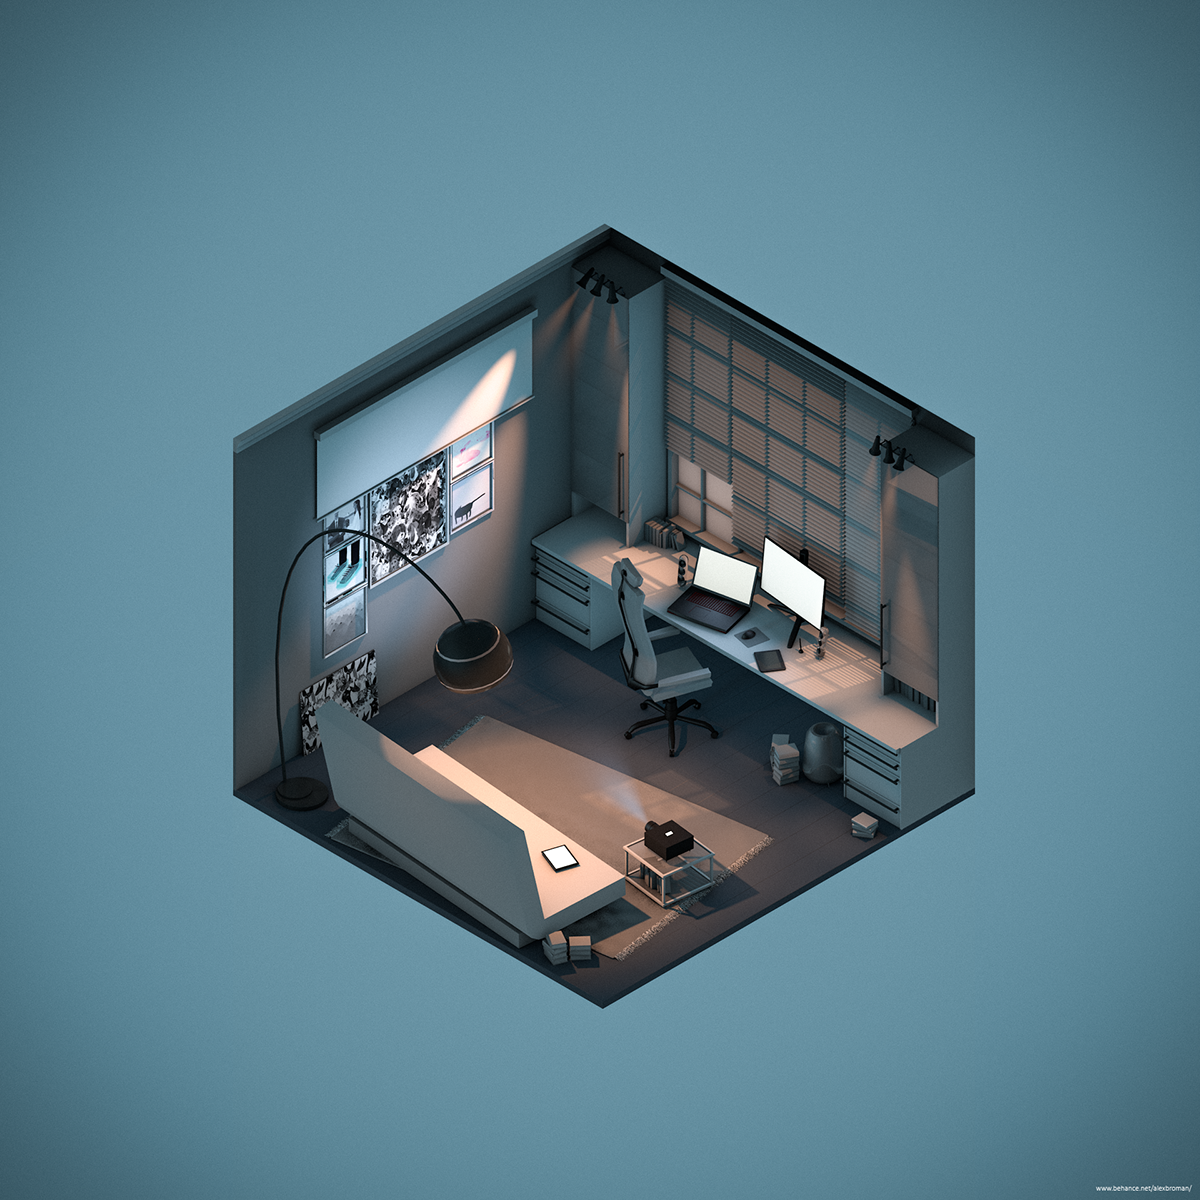 Three Rooms in Isometric View.c4d on Behance